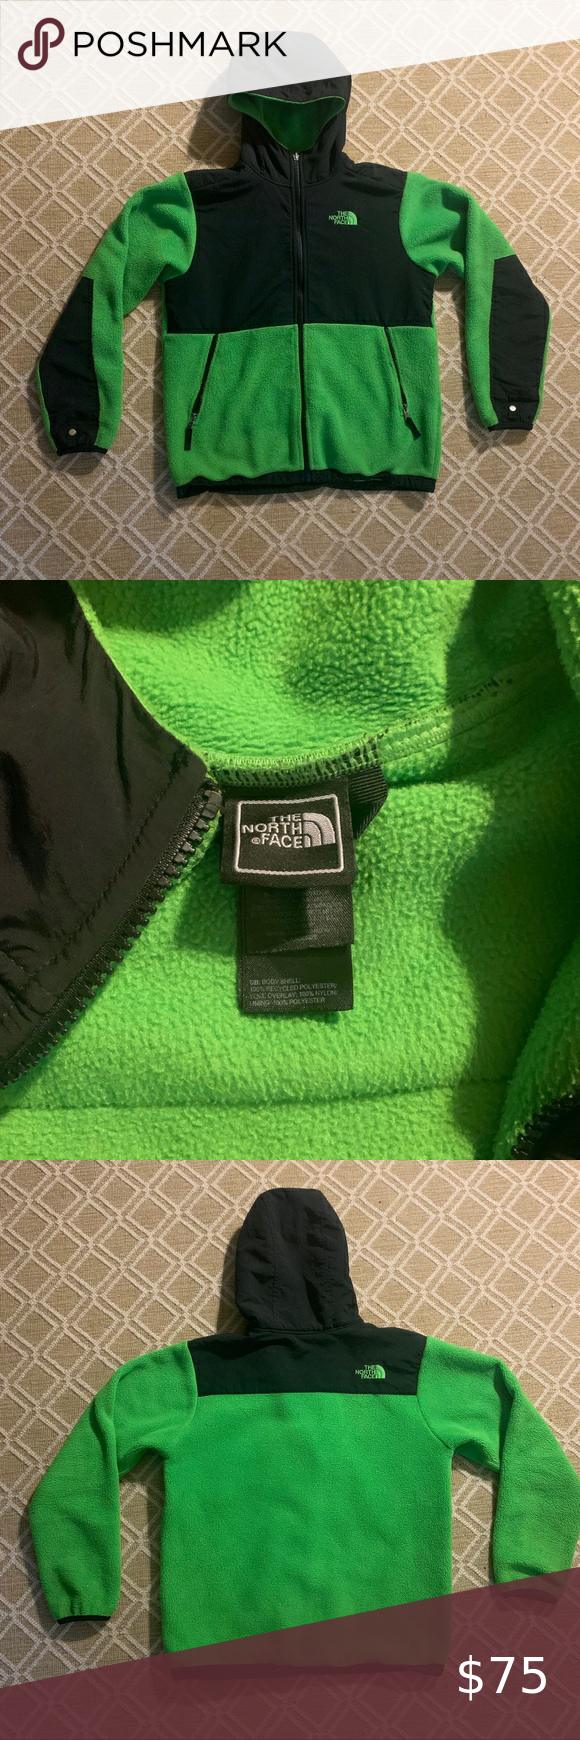 Bright Green North Face Fleece Neon Lime Green North Face Fleece Jacket Size Kids 14 16 Or North Face Fleece North Face Fleece Jacket White North Face Jacket [ 1740 x 580 Pixel ]